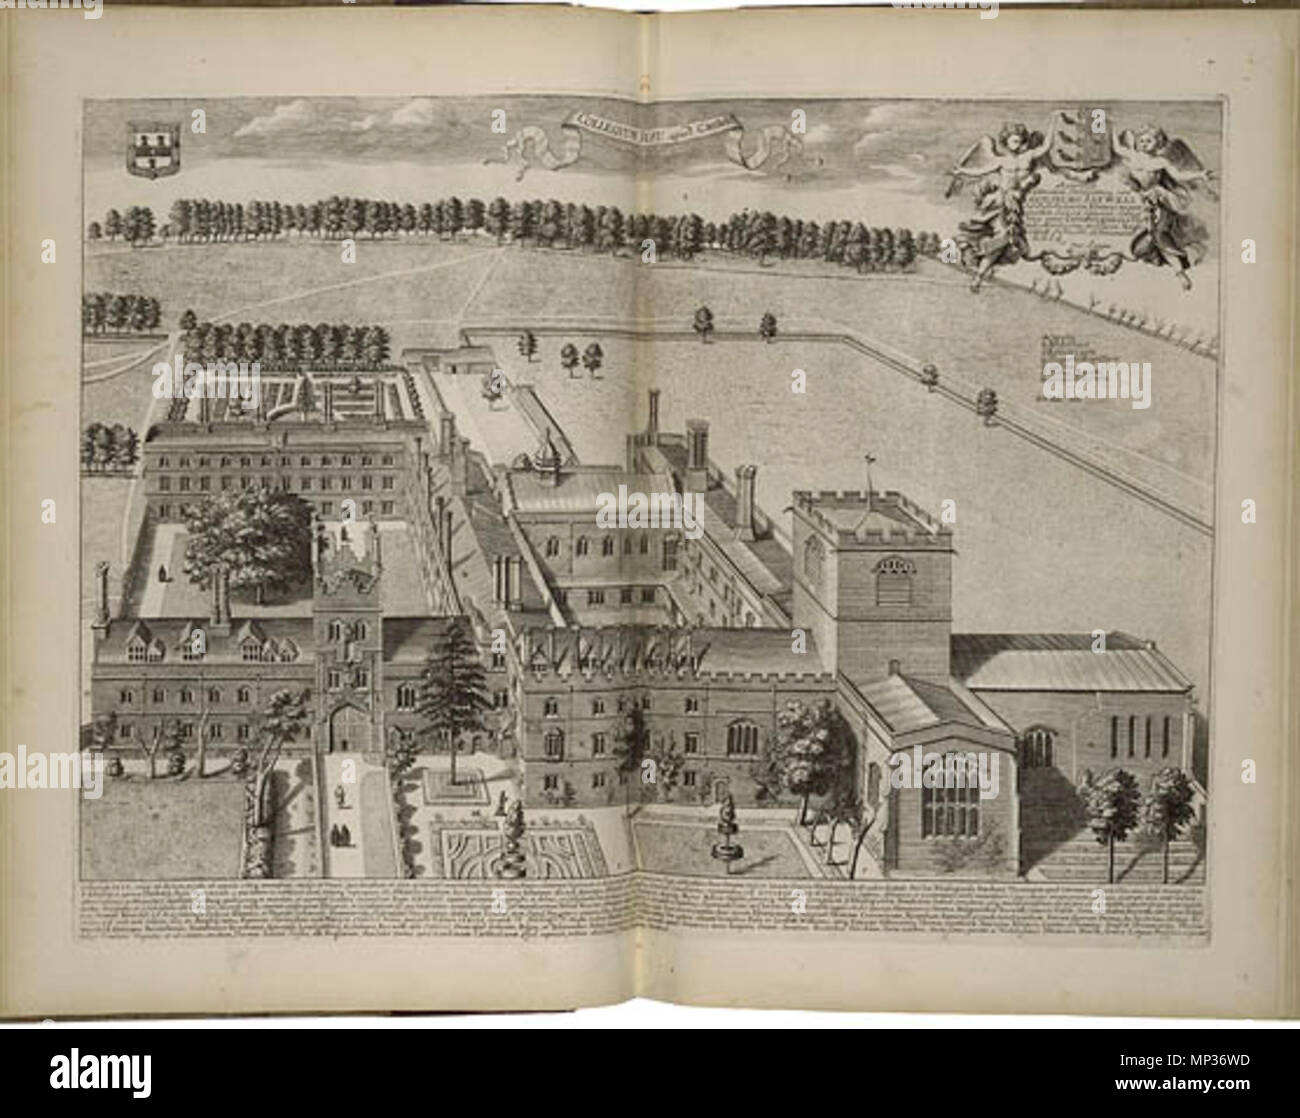 L2837, Plate XXIV    . English: Bird's eye view of Jesus College, Cambridge by David Loggan, published in 1690 . 1690.   David Loggan (1634–1692)  Description English artist and engraver  Date of birth/death August 1634 July 1692  Location of birth/death Gdańsk London  Authority control  : Q5236742 VIAF:88085606 ISNI:0000 0001 1856 4291 ULAN:500030441 LCCN:n84133161 GND:131599224 WorldCat 718 Jesus College, Cambridge by Loggan 1690 - Folger 046539W5 - Stock Image